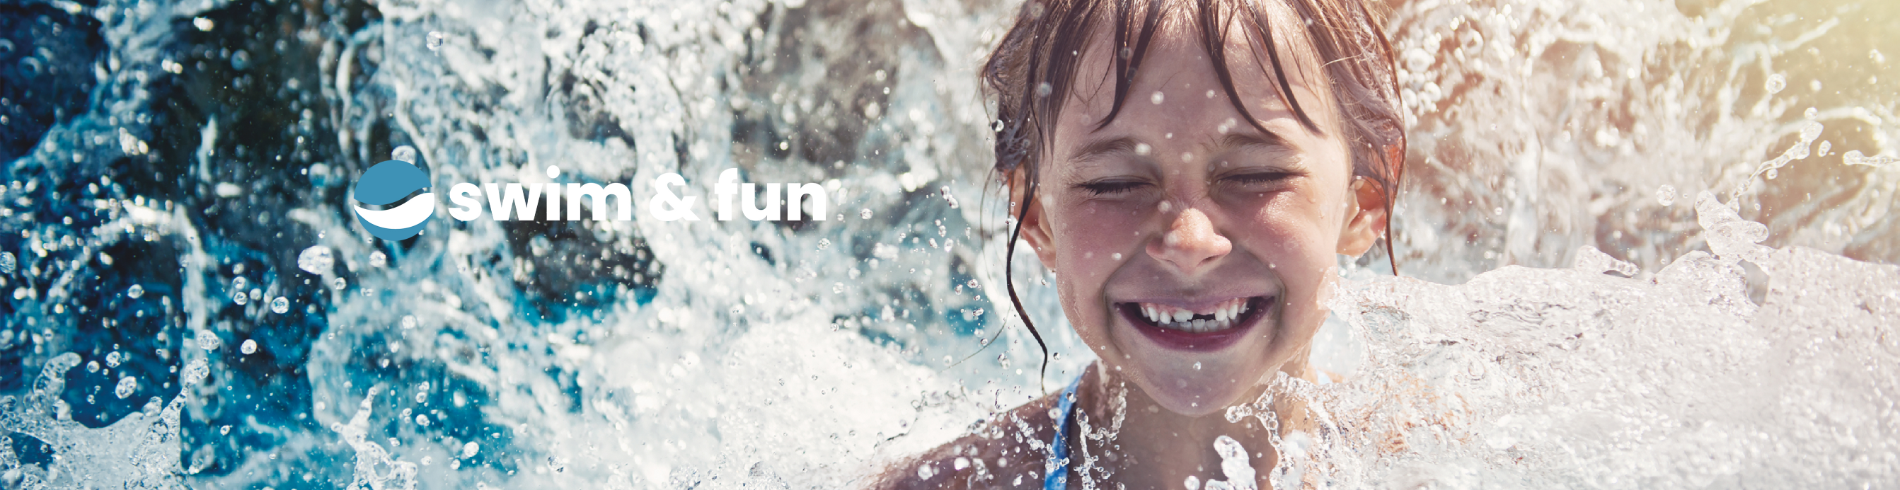 Swim & Fun Scandinavia cover image